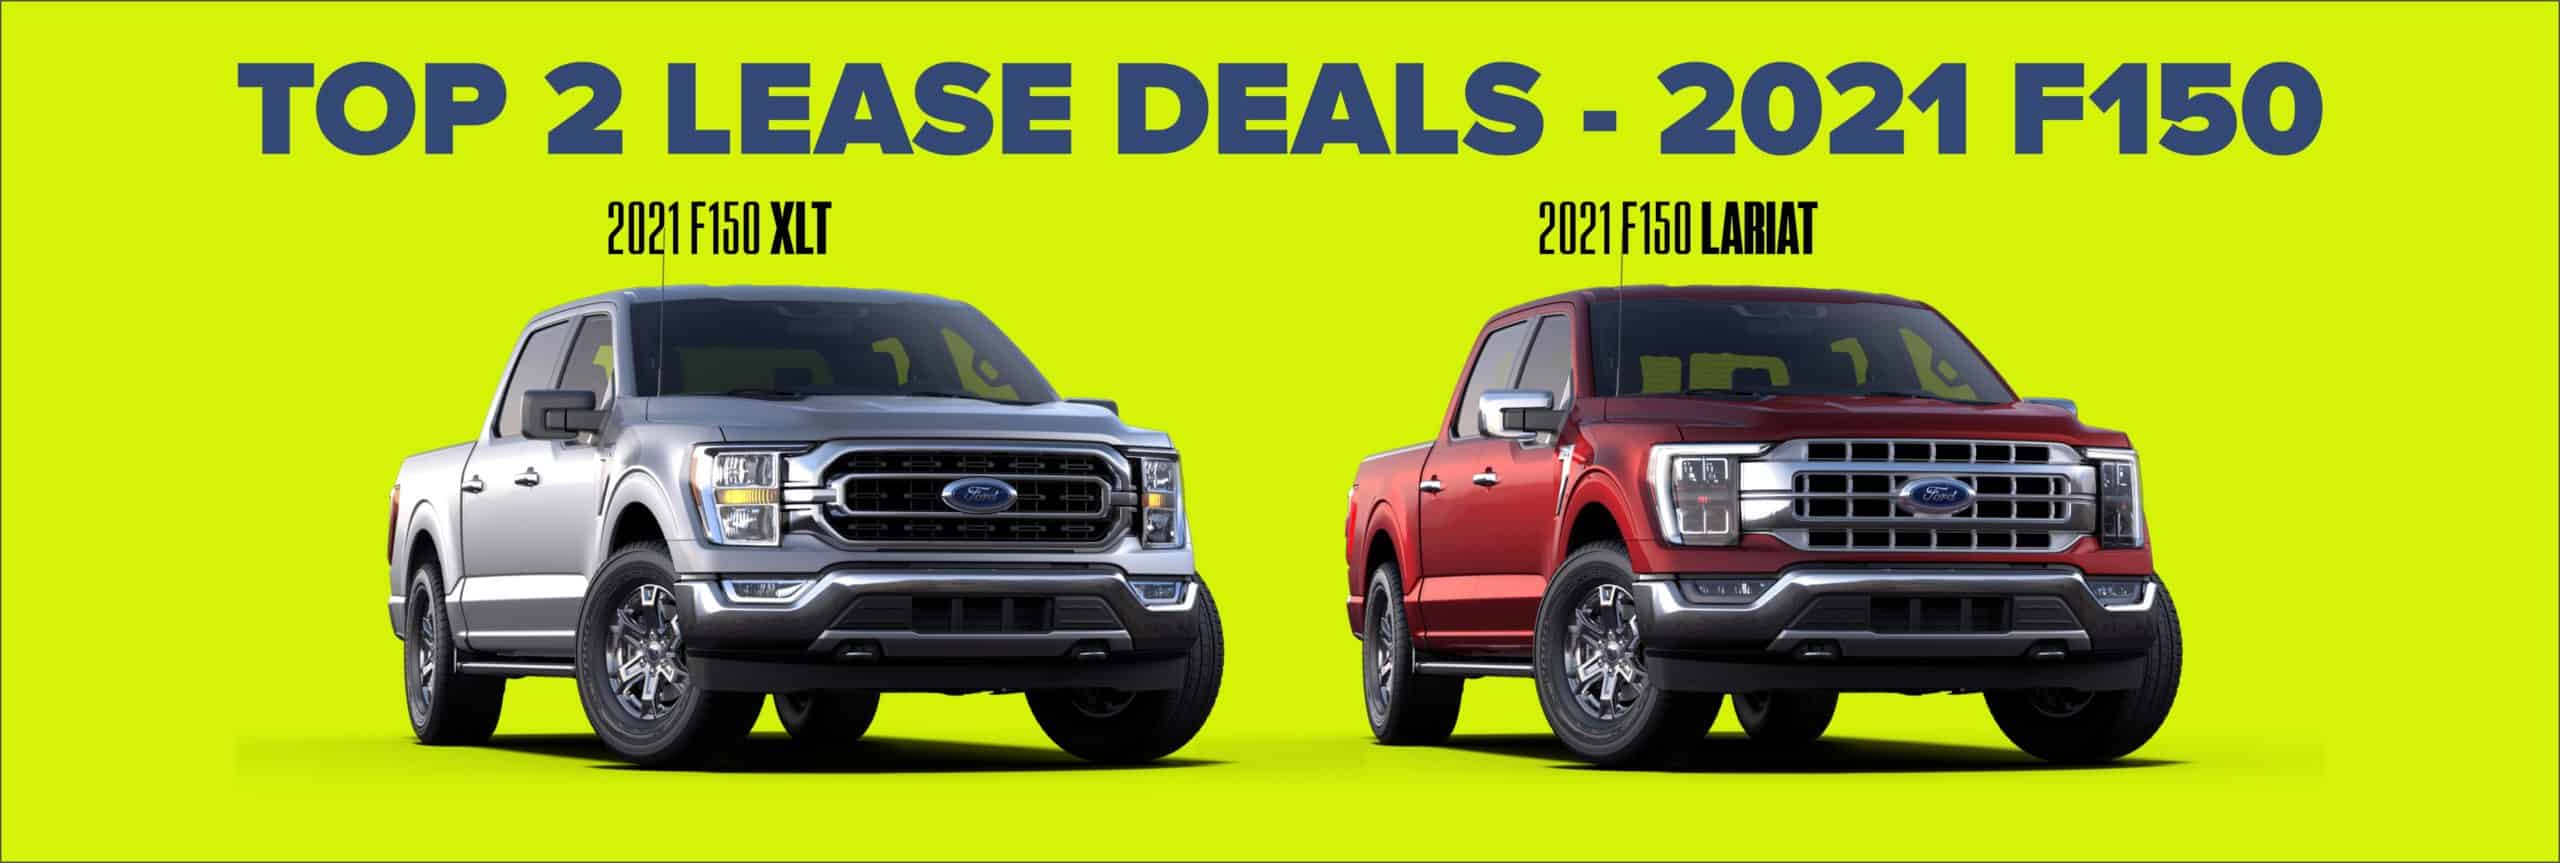 TOP 2 LEASE DEALS ON 2021 F150 LARIAT